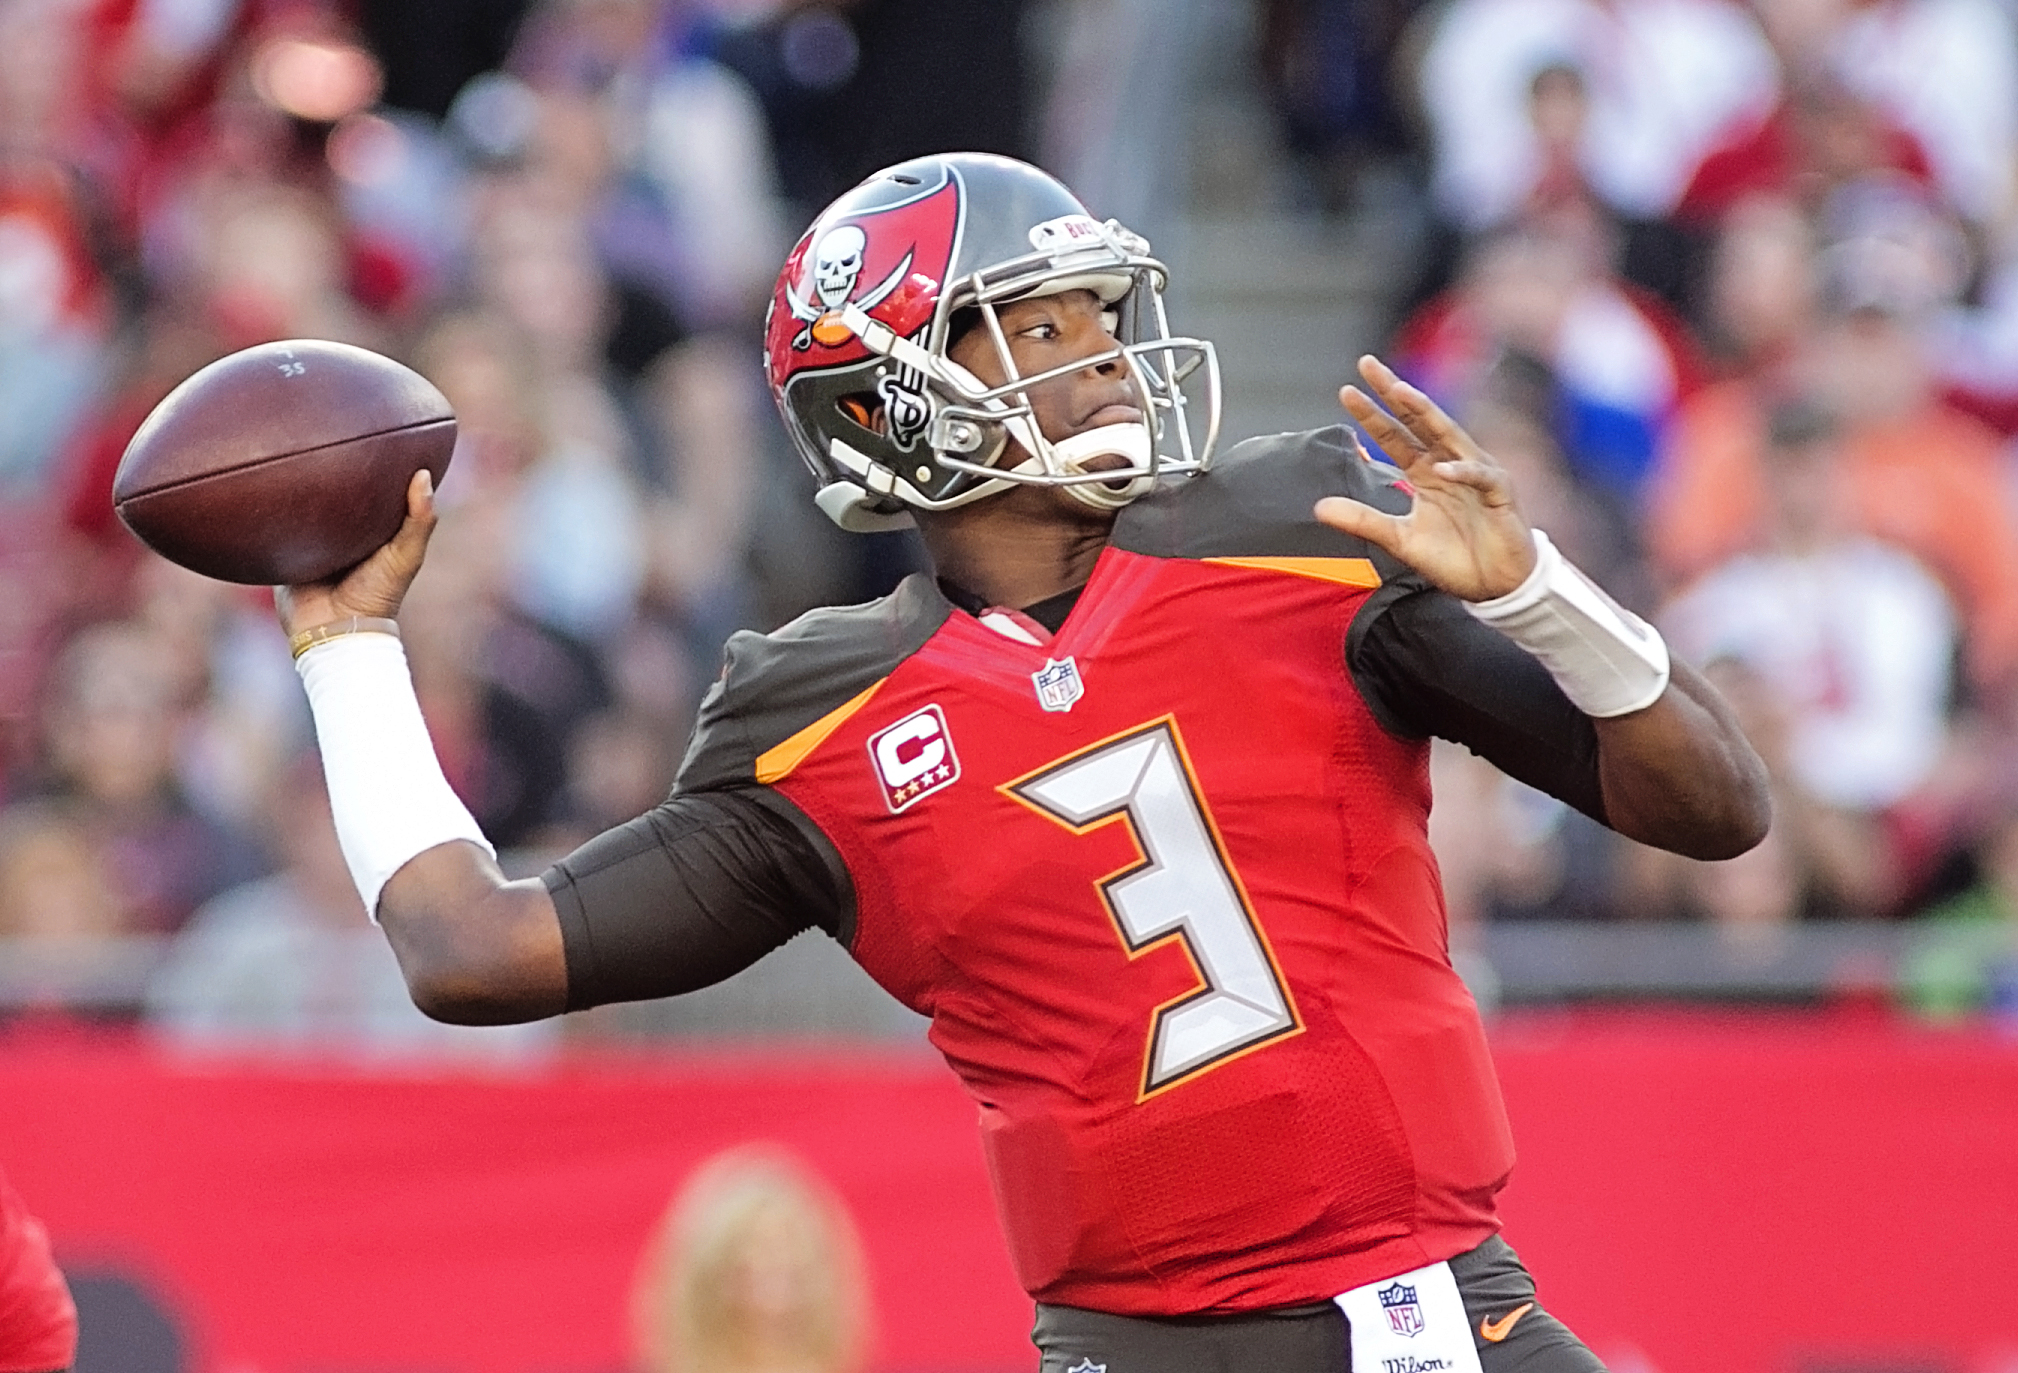 Winston has five career comebacks in the fourth quarter./CAMERON MANDATO